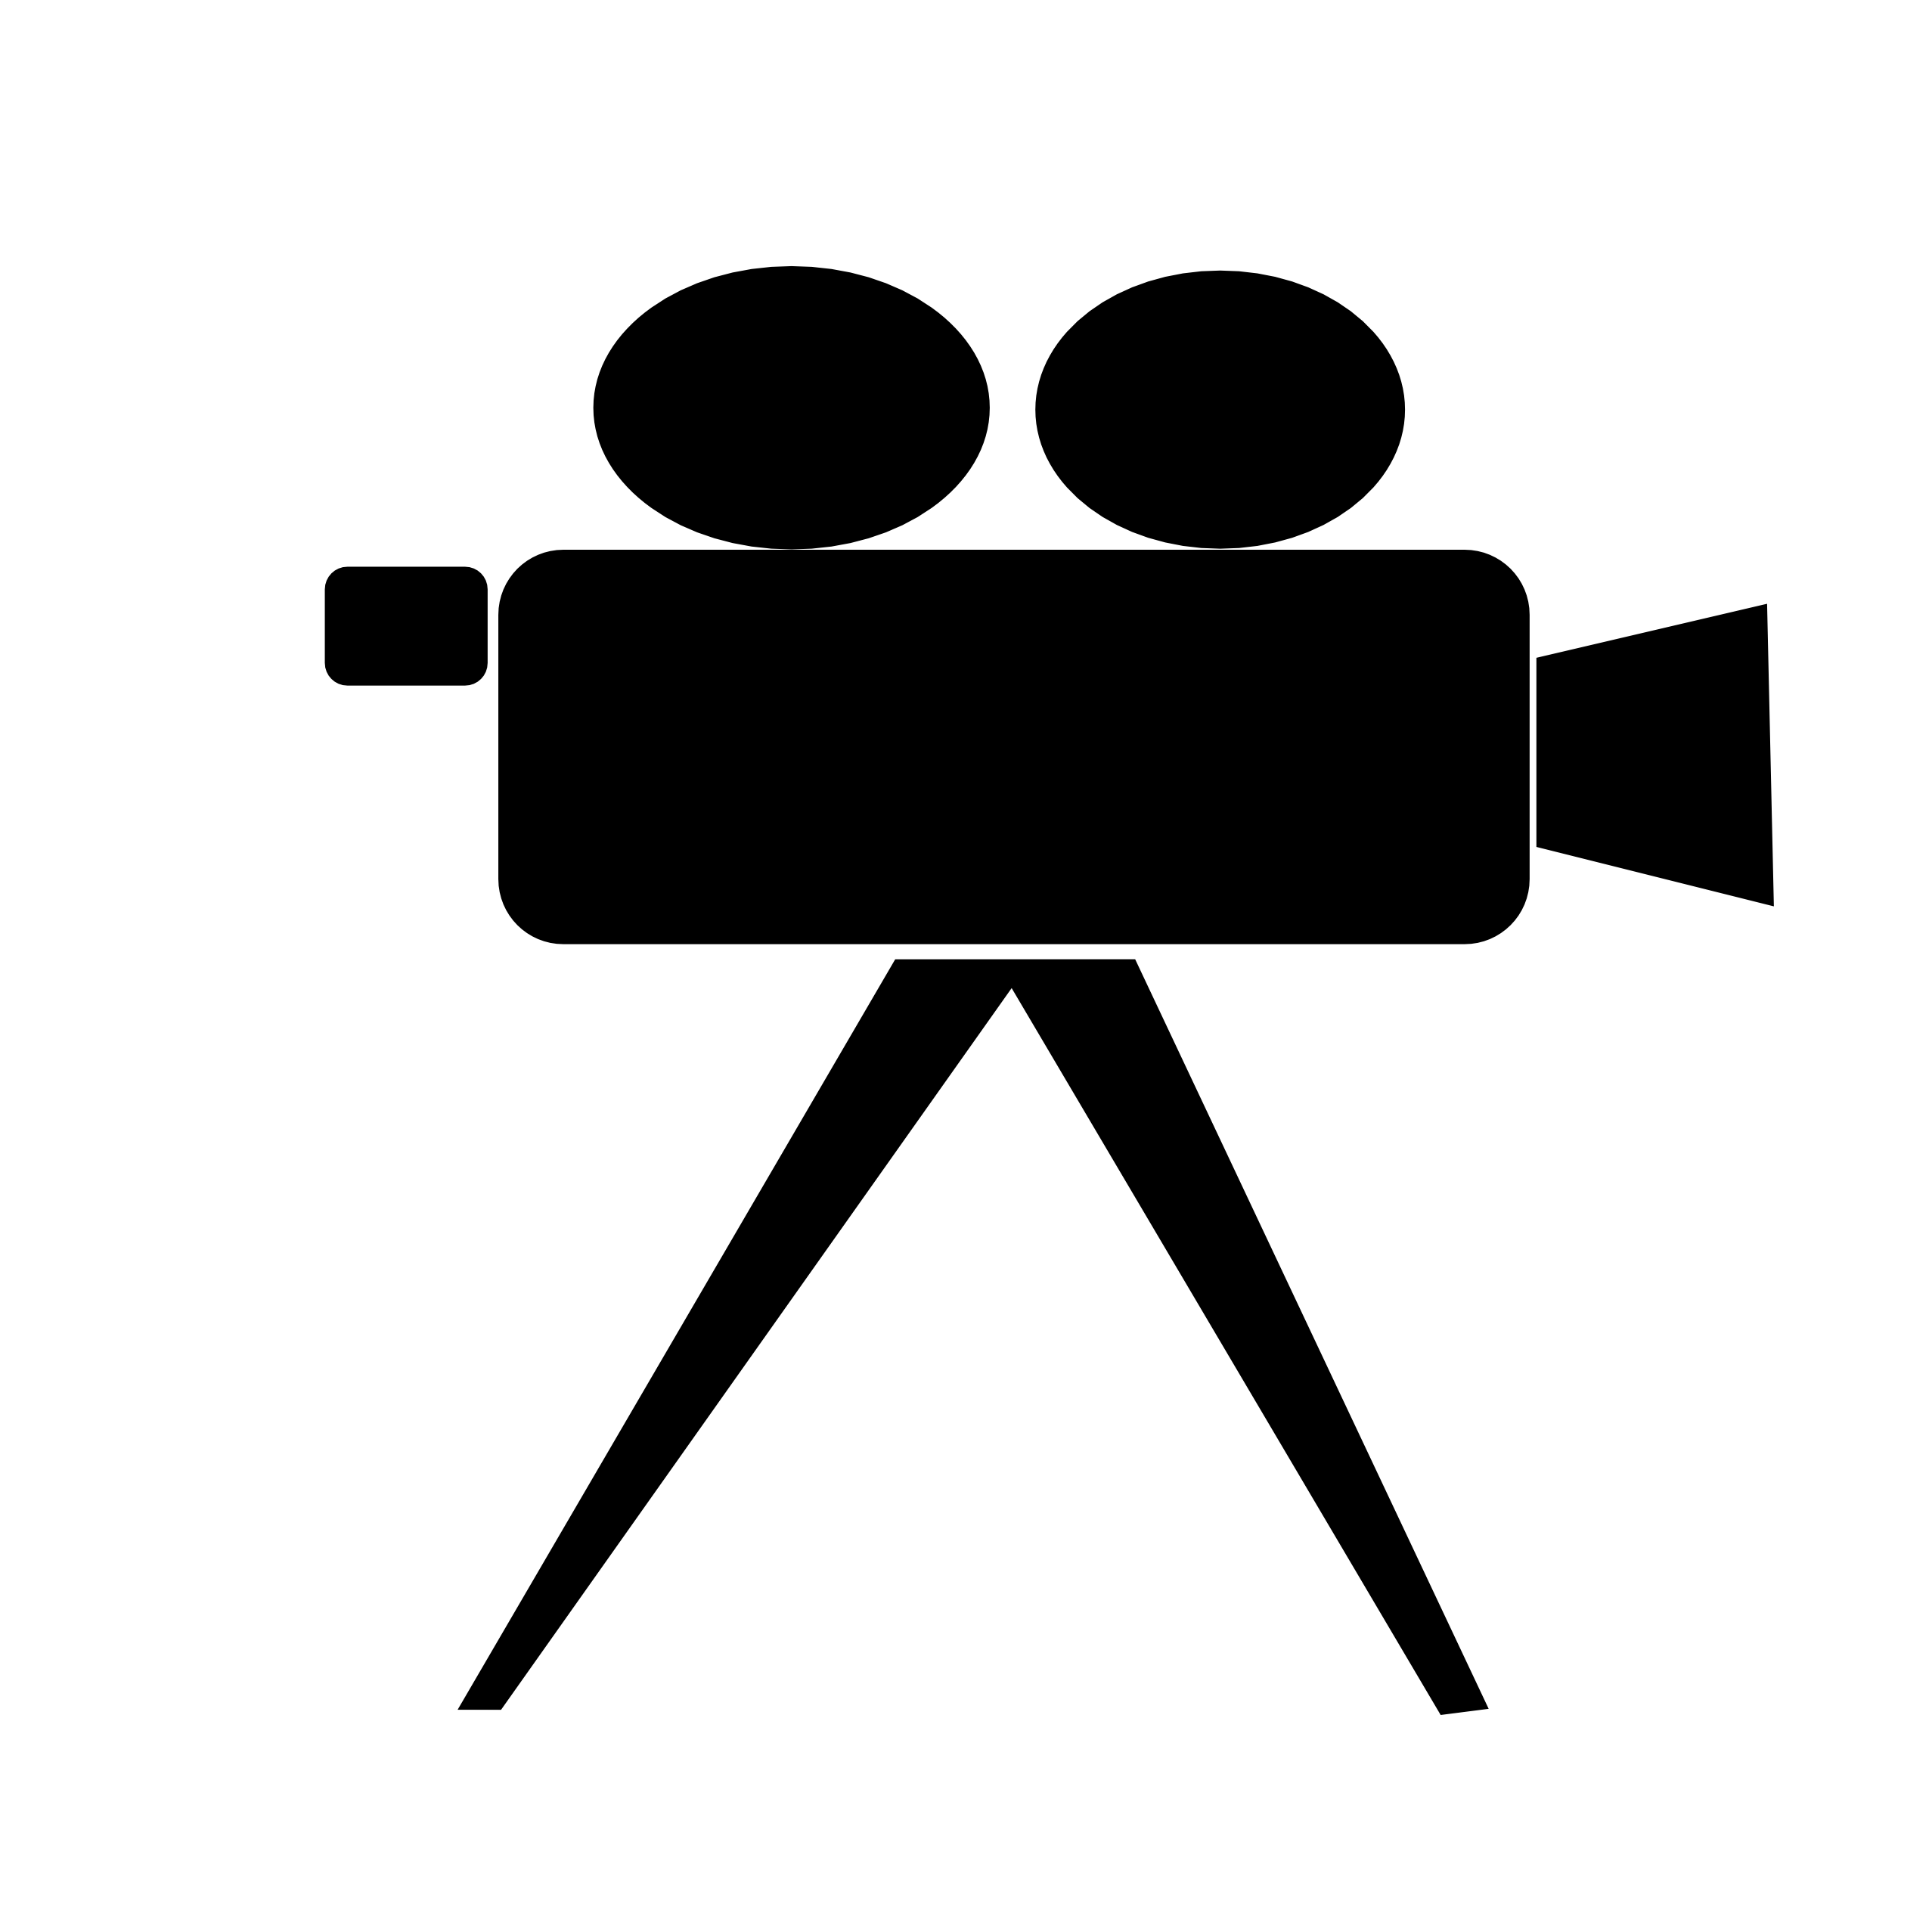 2555x2555 Video Camera Clip Art